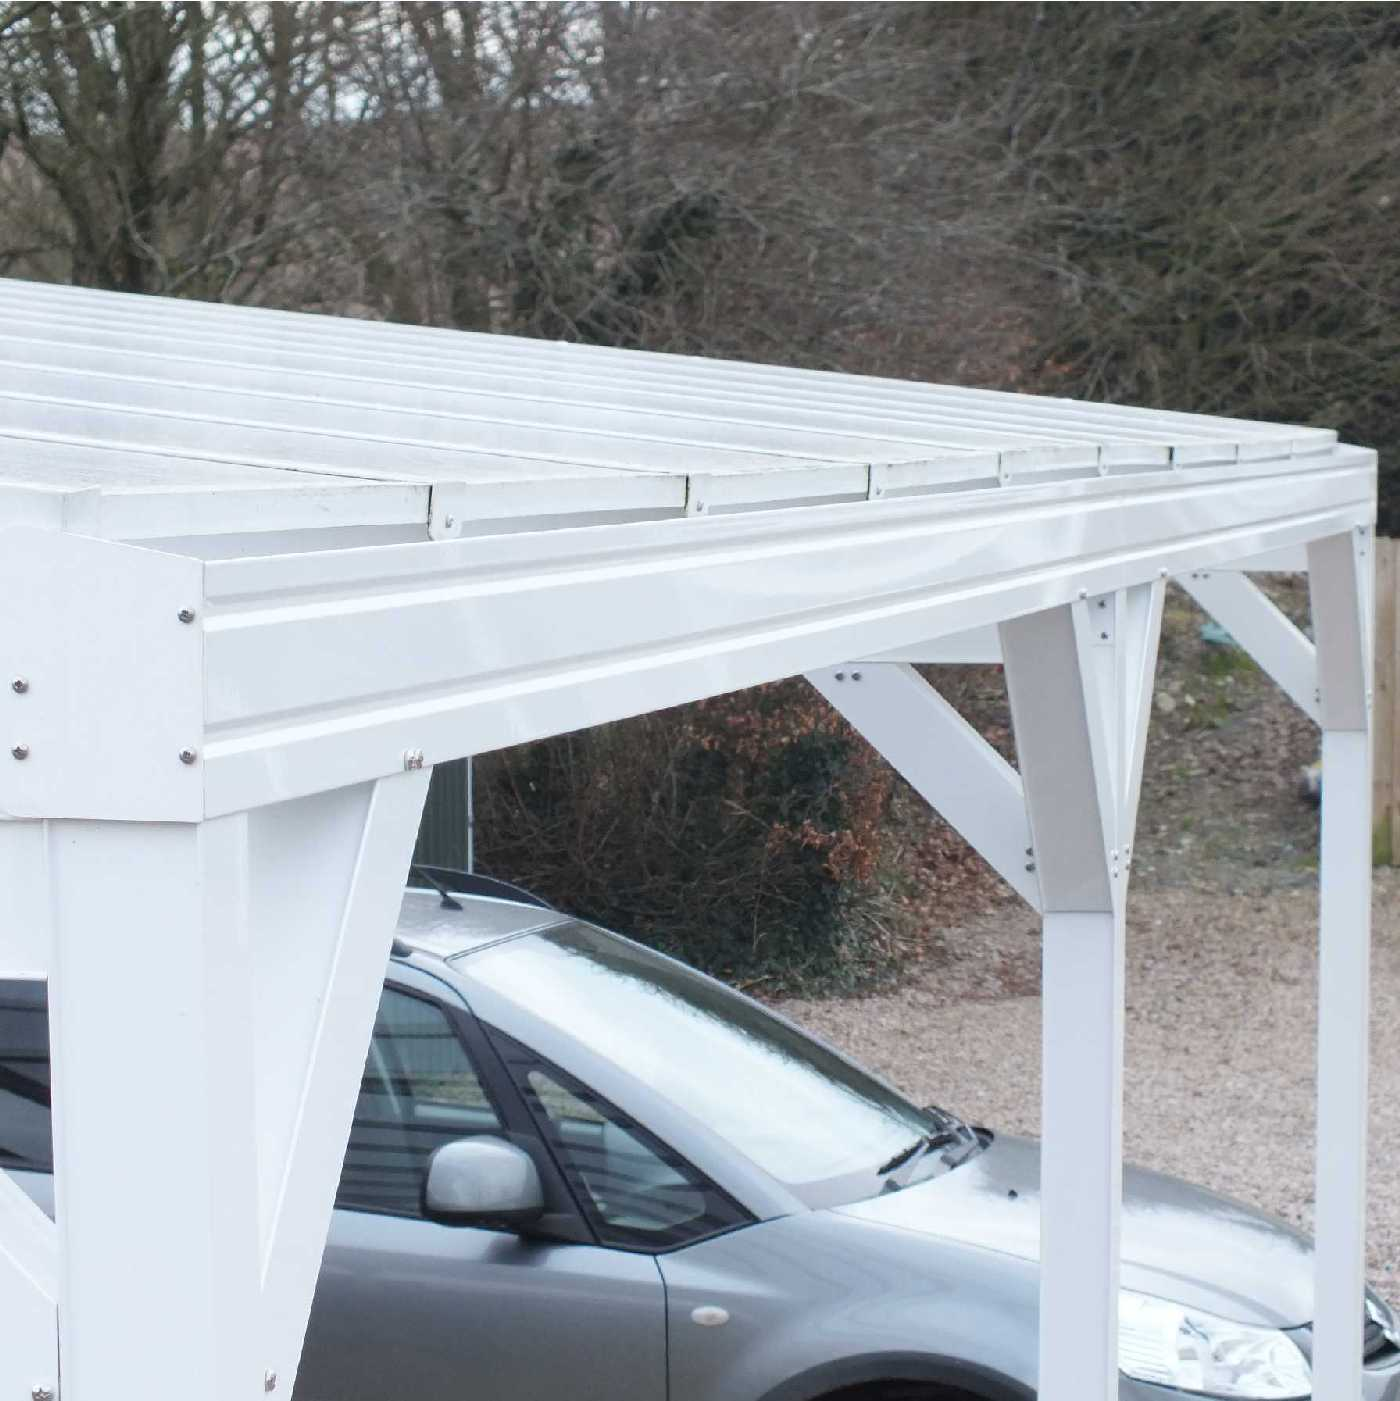 Omega Smart Free-Standing, MonoPitch Roof Canopy with 16mm Polycarbonate Glazing - 6.3m (W) x 2.0m (P), (8) Supporting Posts from Omega Build